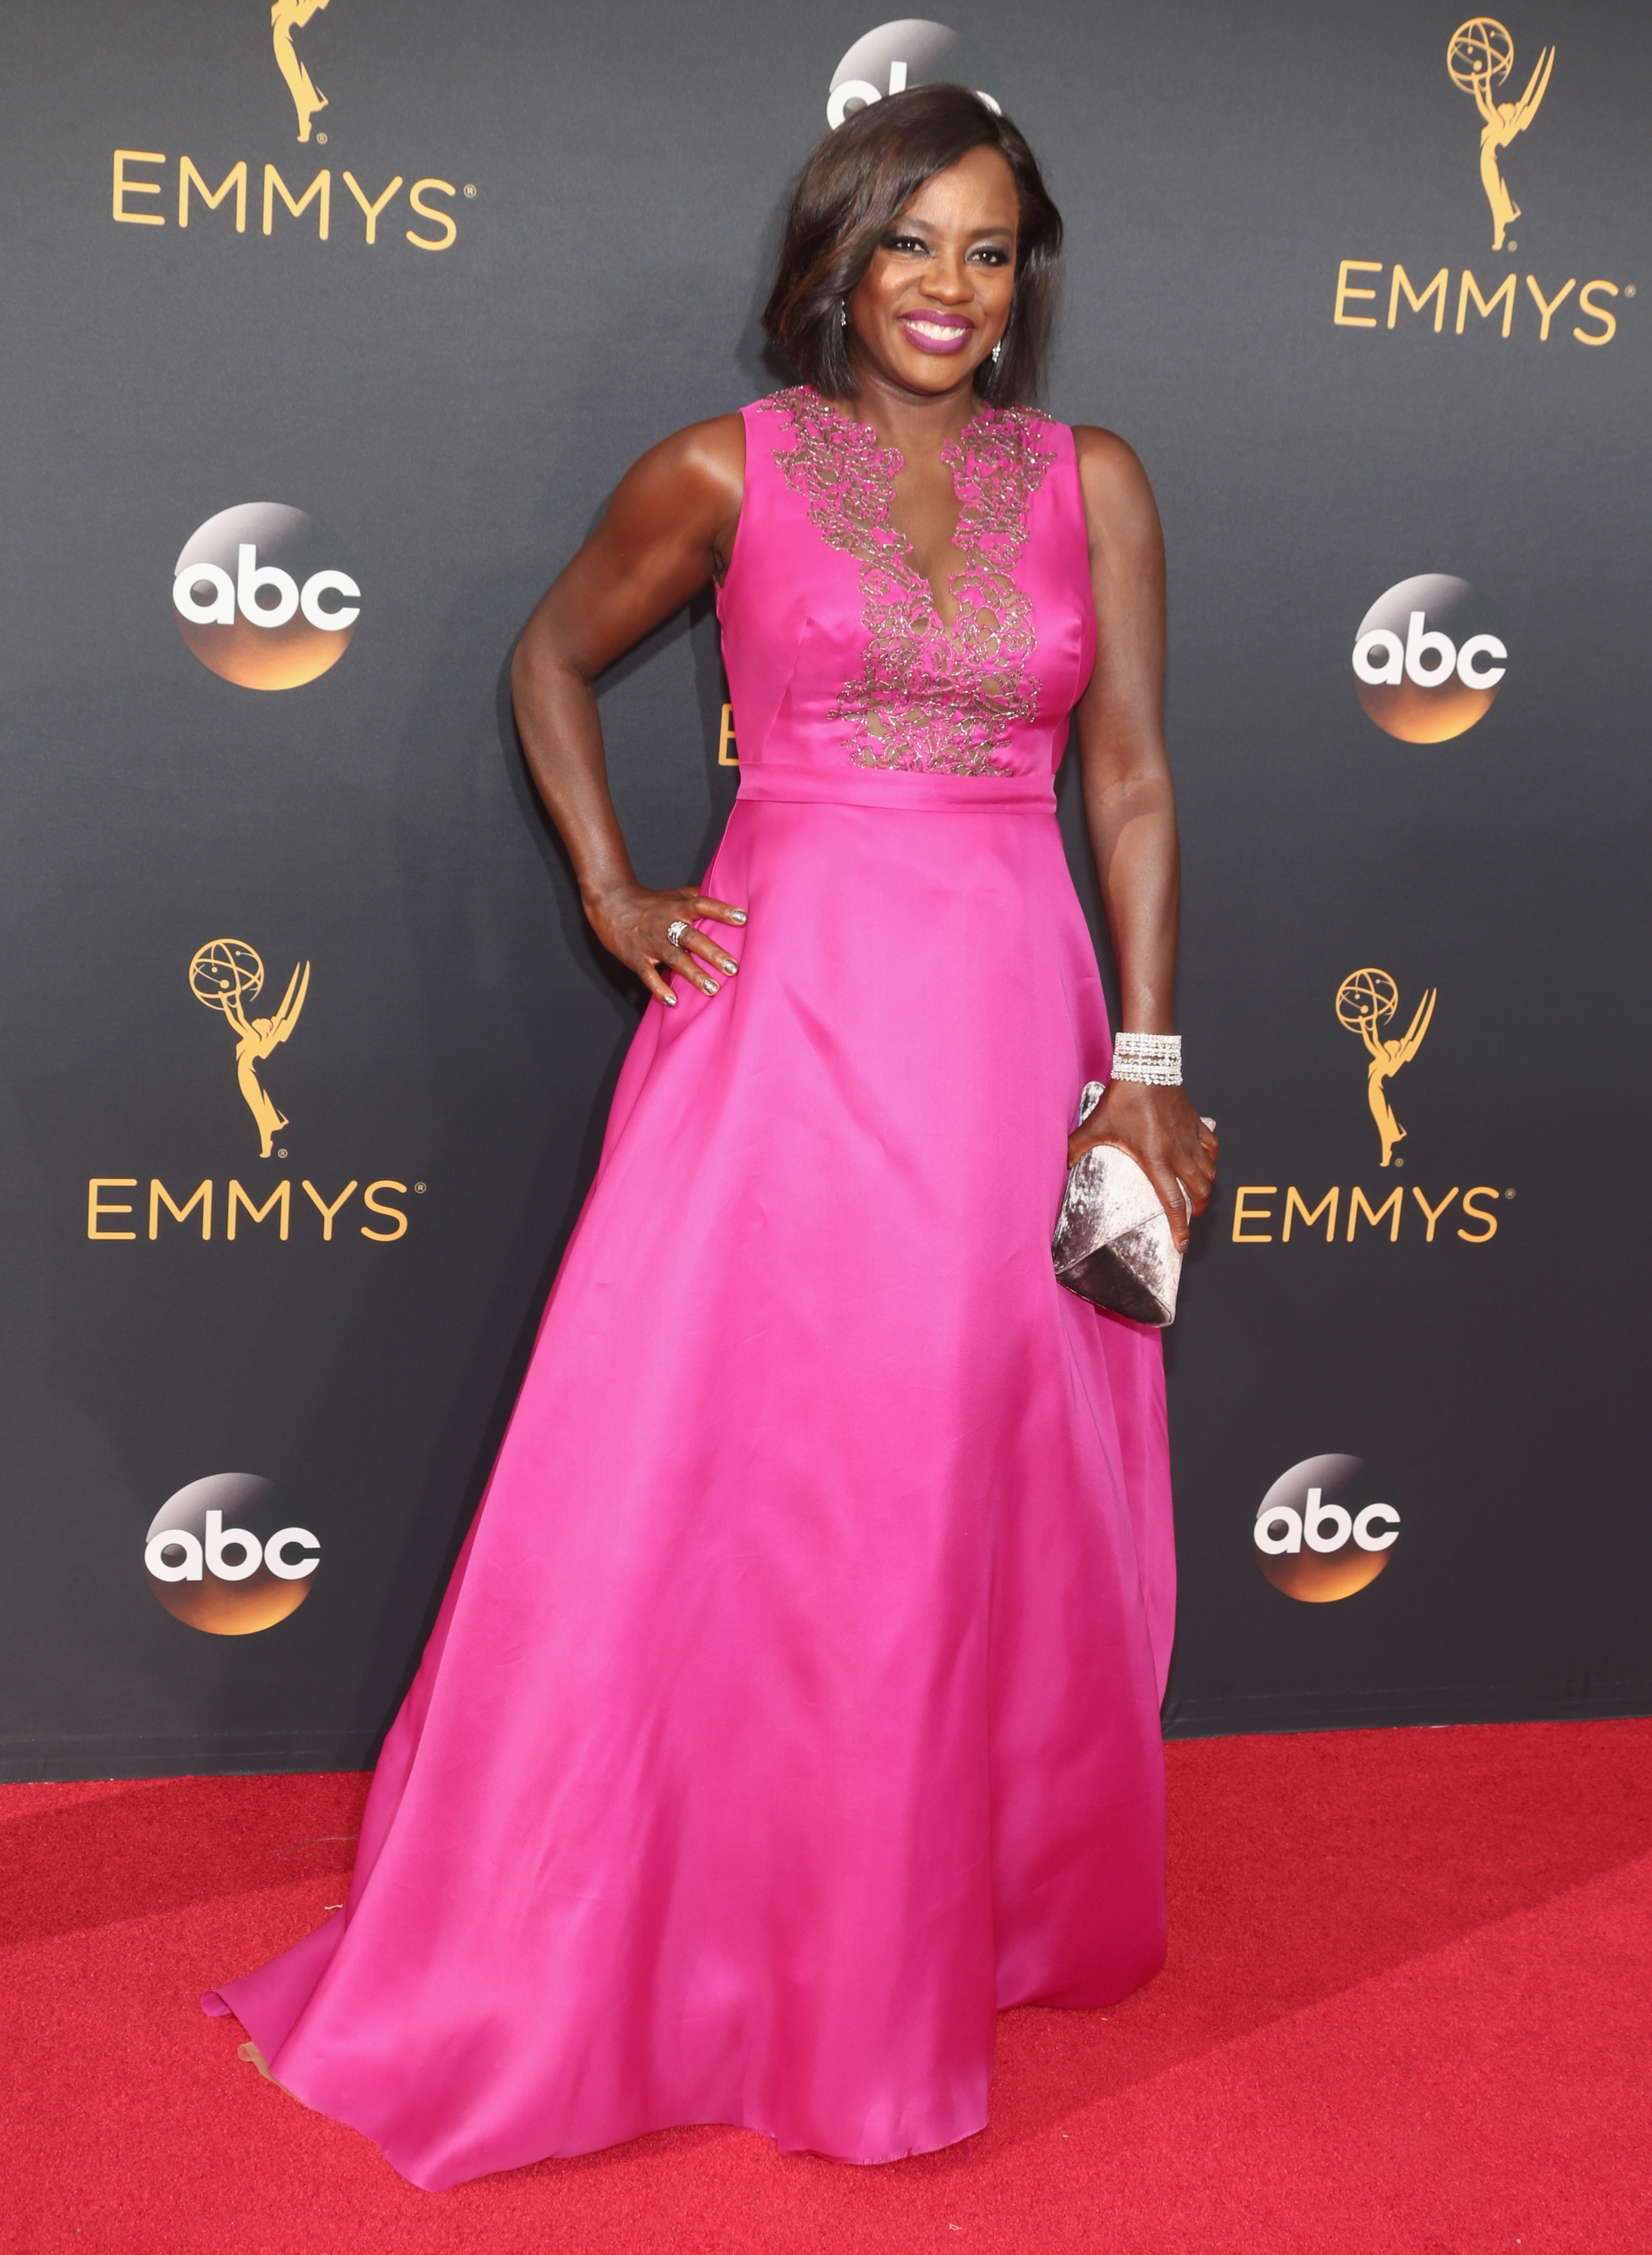 Viola Davis arrives at the 68th Annual Primetime Emmy Awards at Microsoft Theater on Sept. 18, 2016 in Los Angeles.